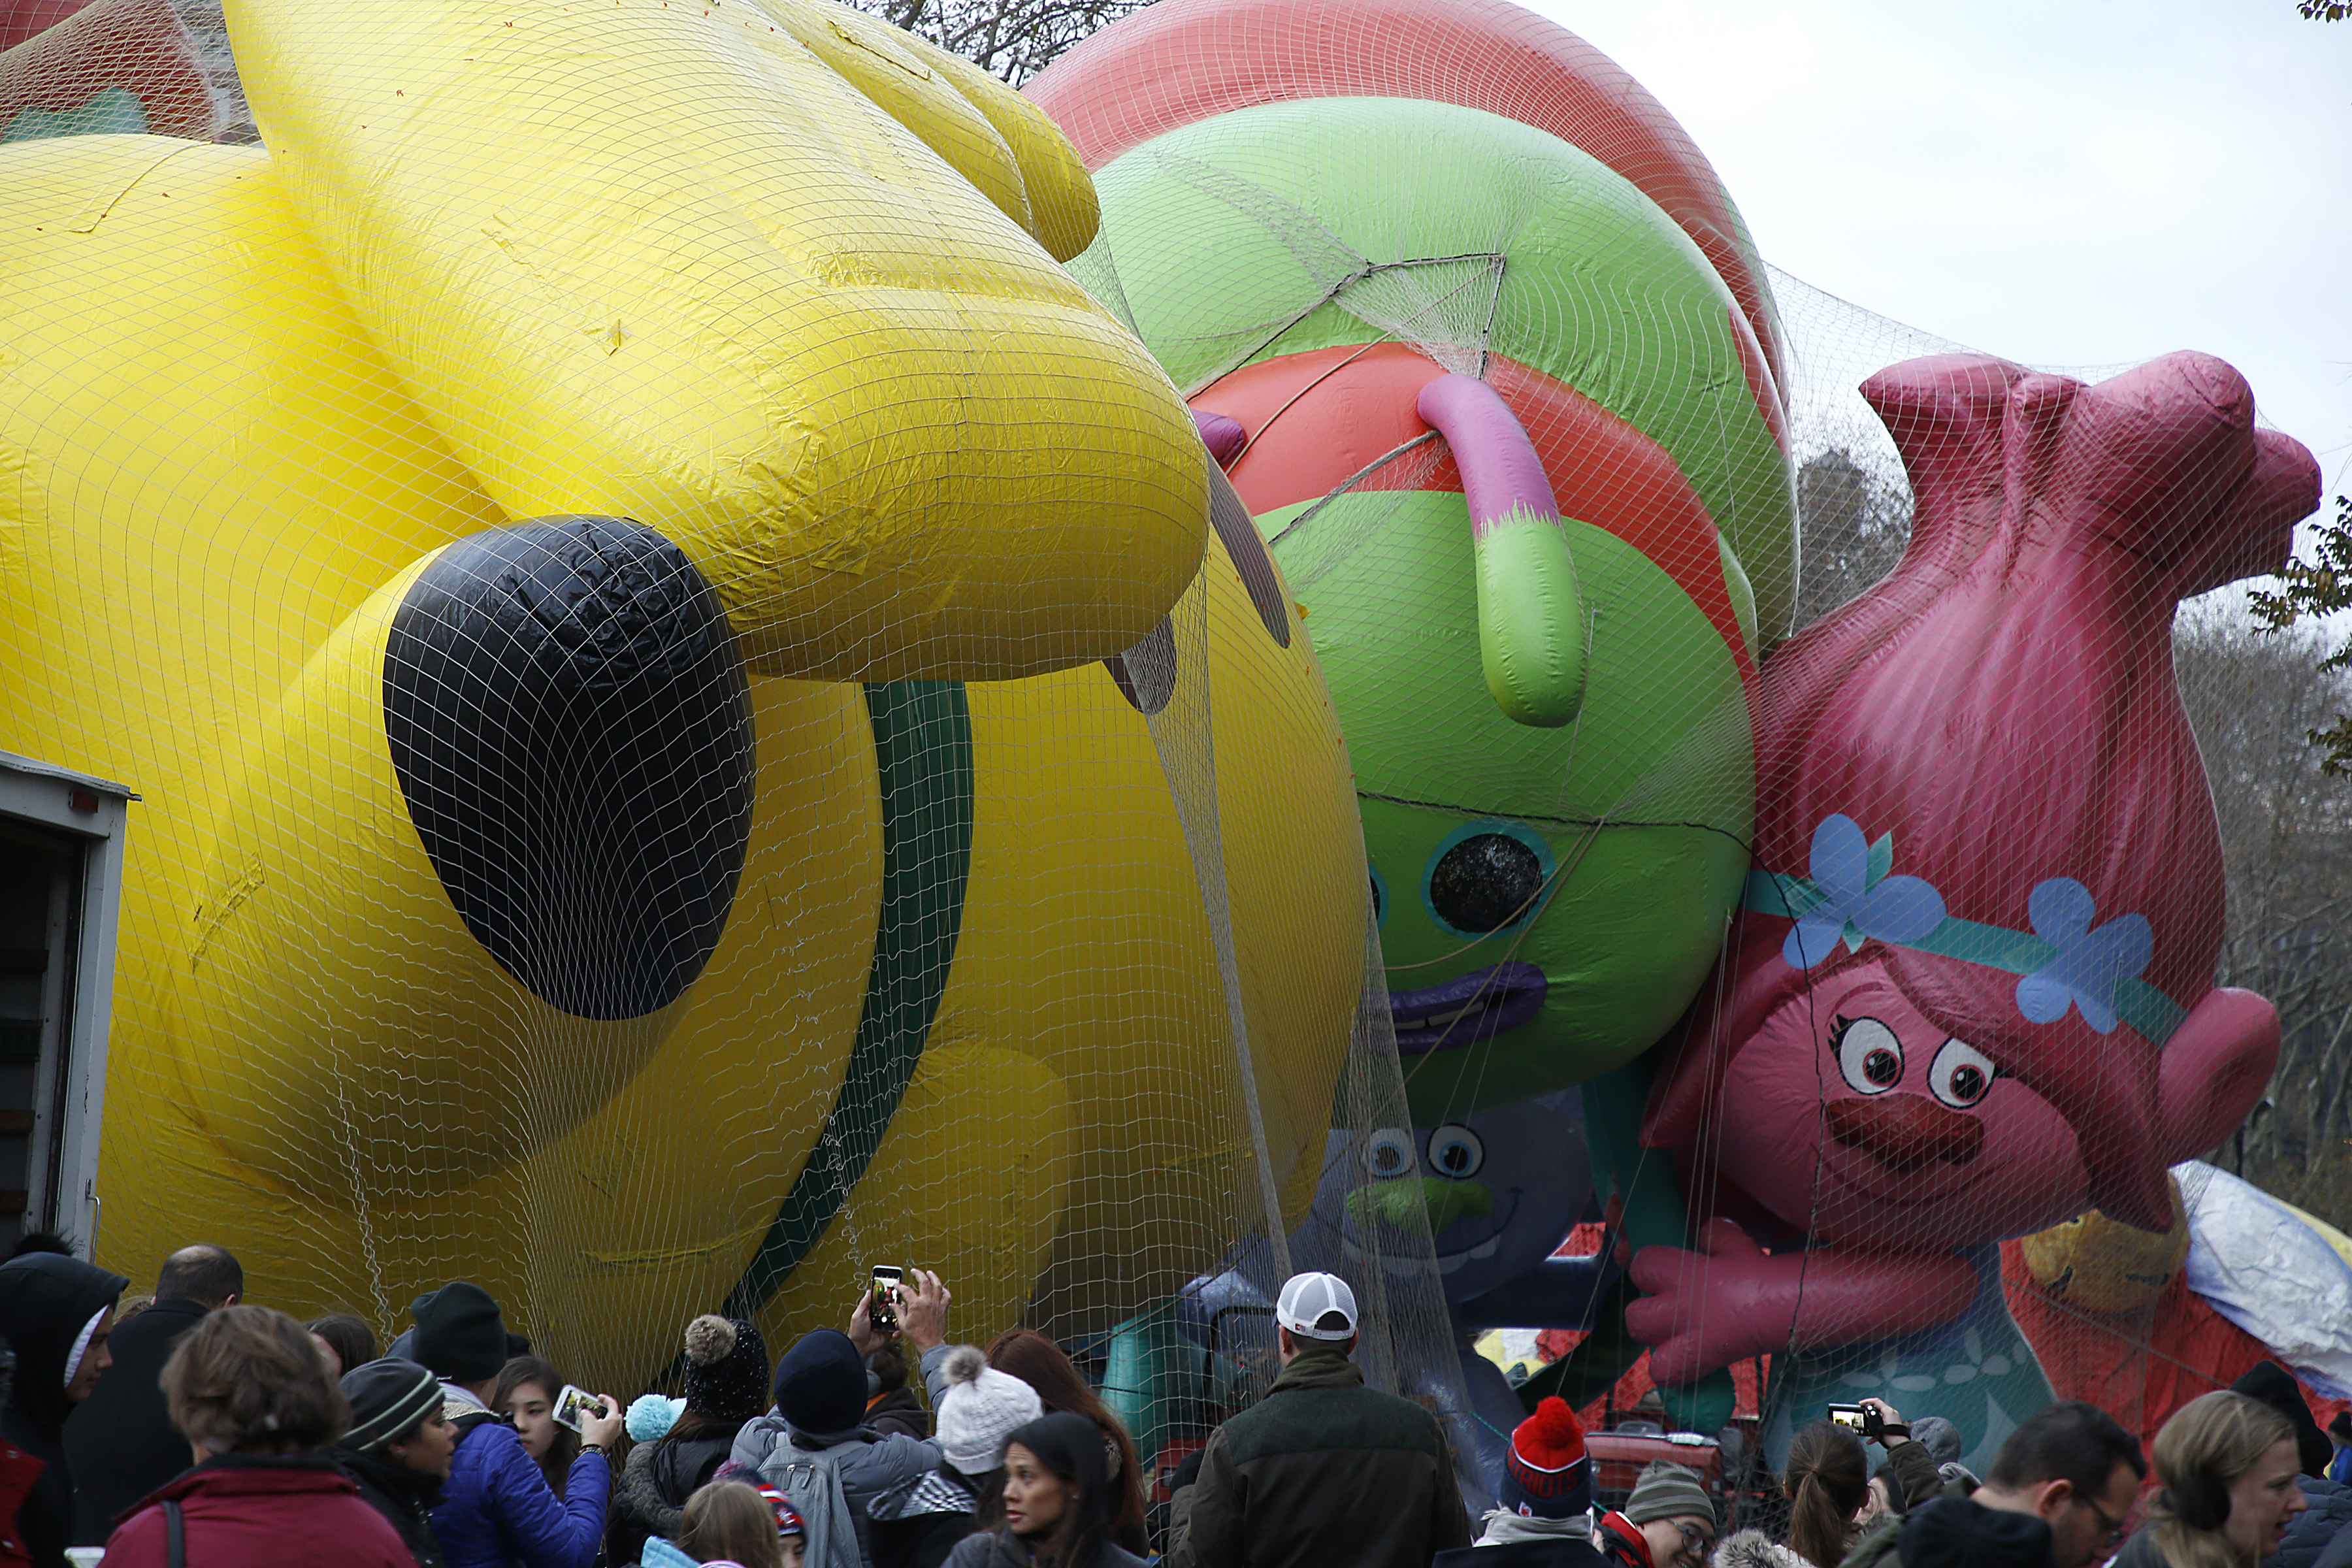 92nd Annual Macy's Thanksgiving Day Parade - Inflation Eve